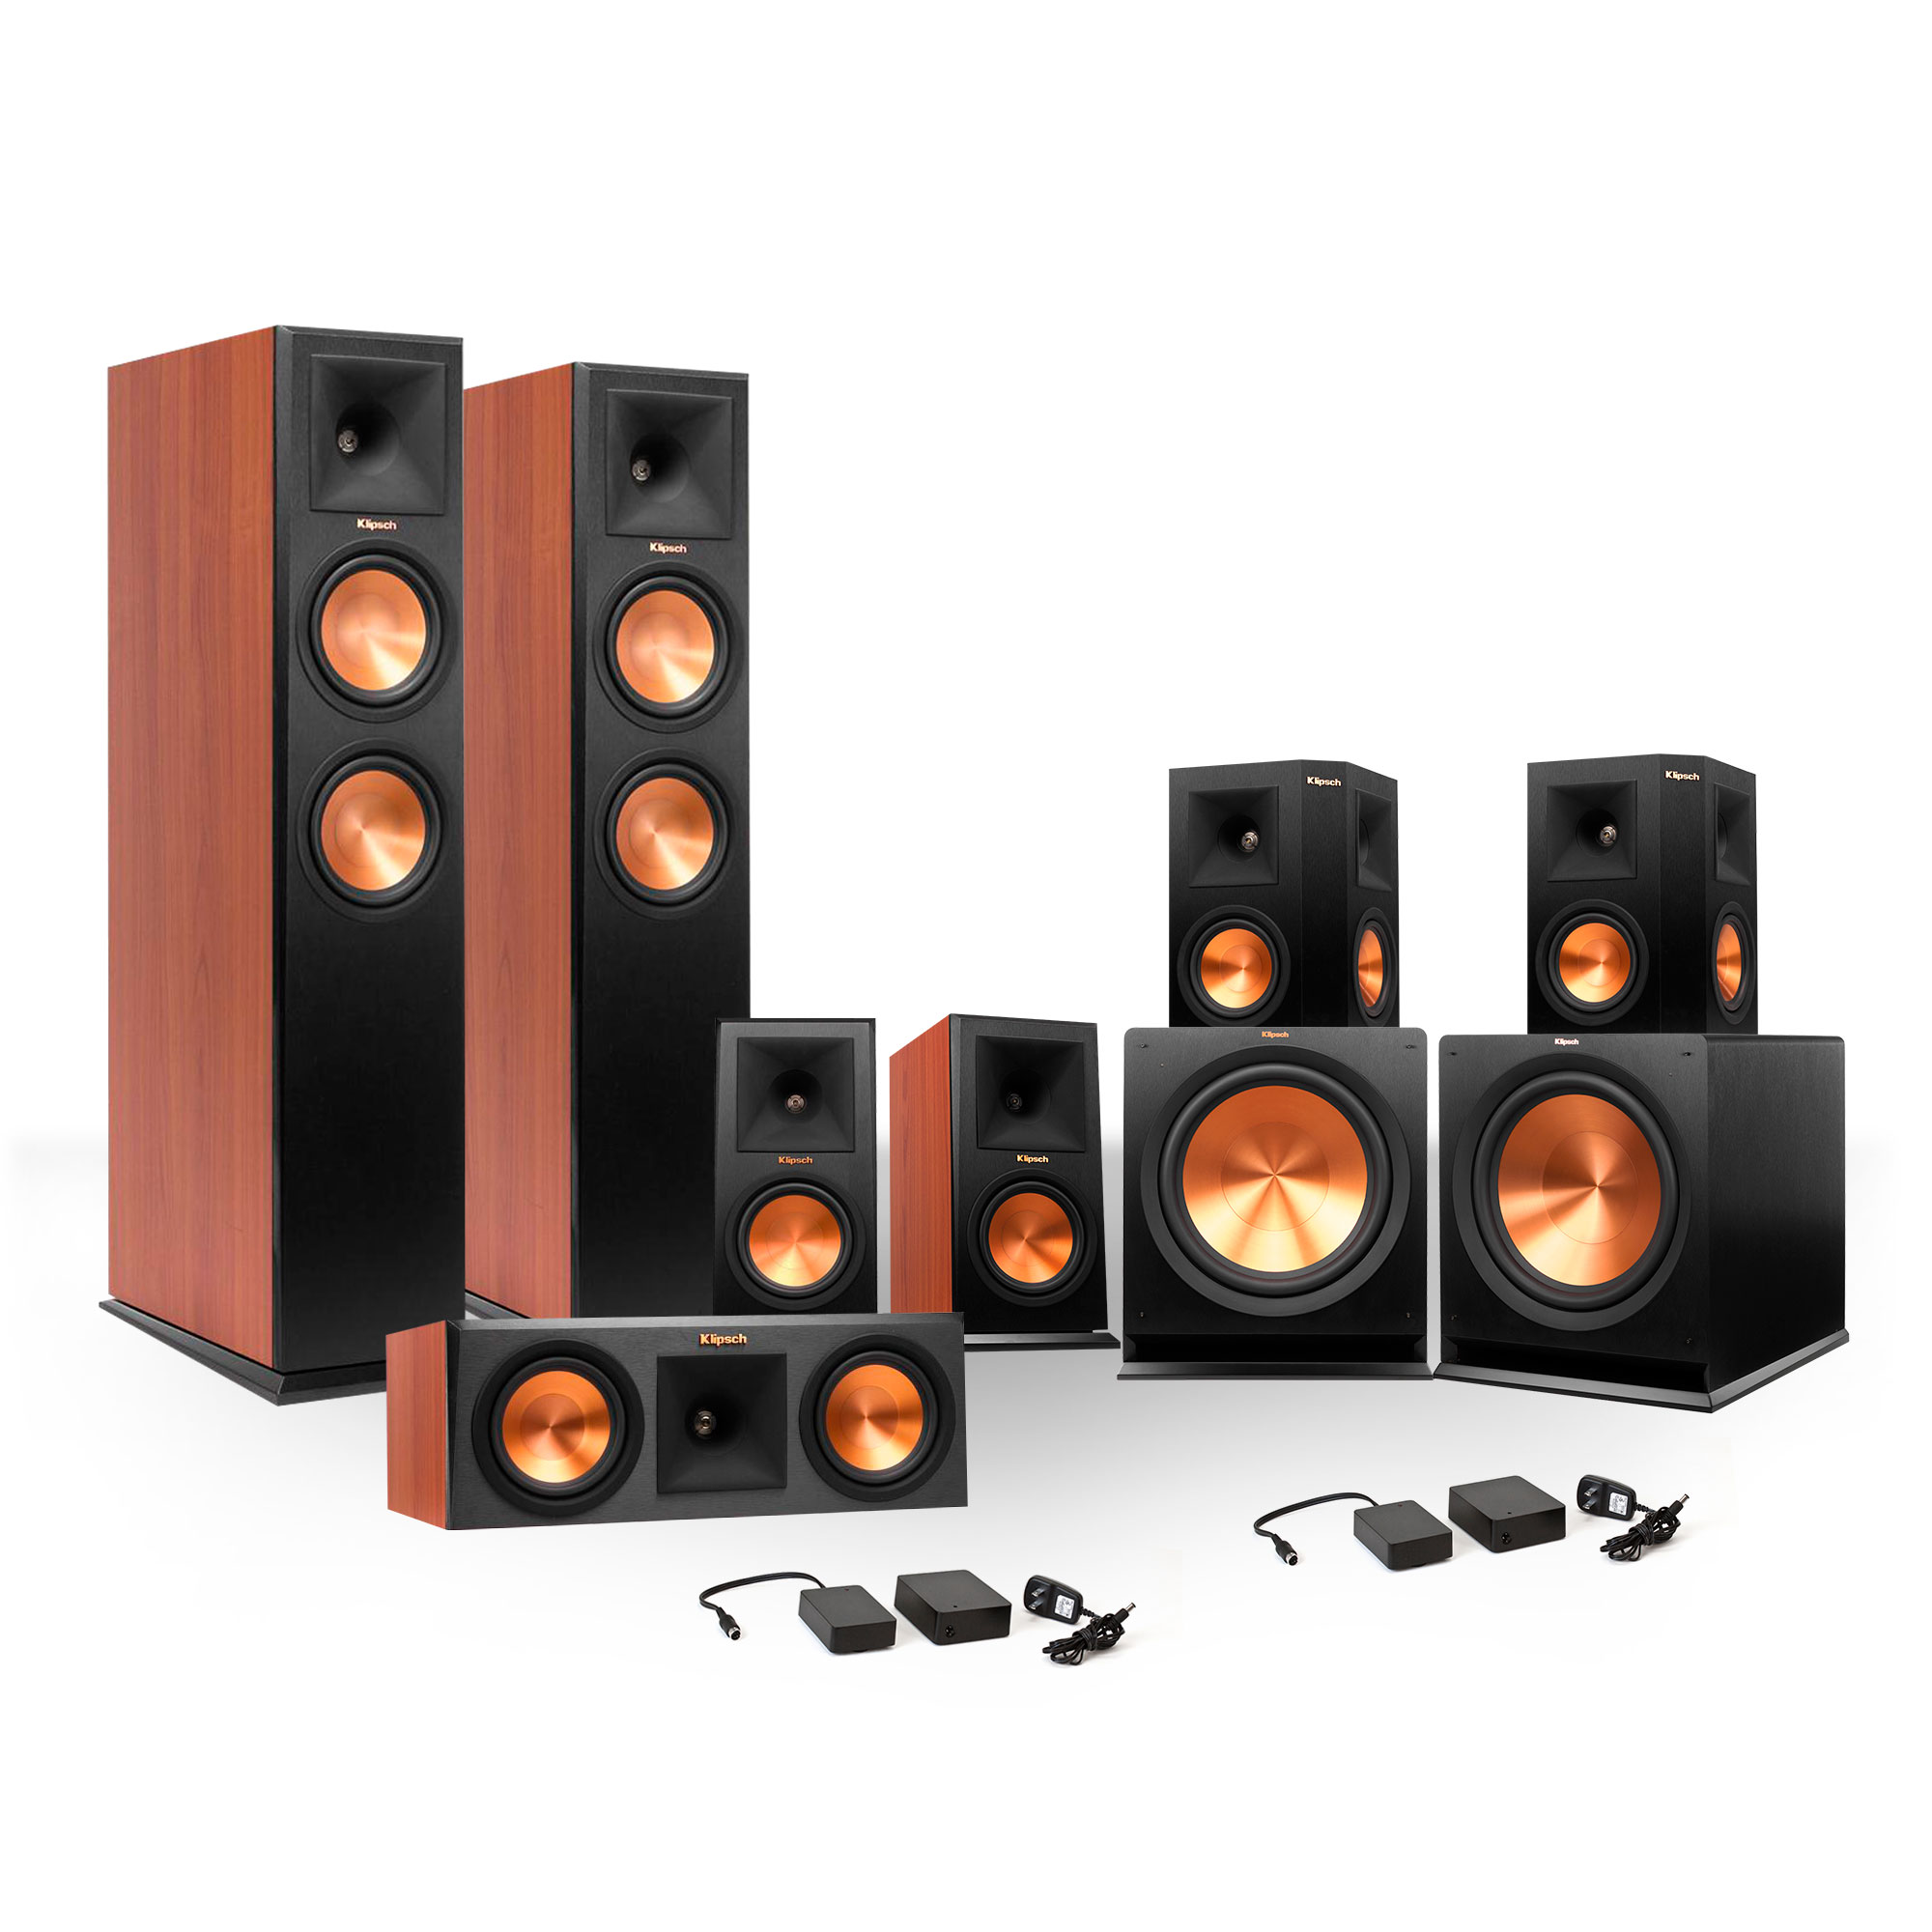 Klipsch 7.2 RP-250 Reference Premiere Surround Sound Speaker Package with R-110SW Subwoofers and Two FREE Wireless Kits by Klipsch